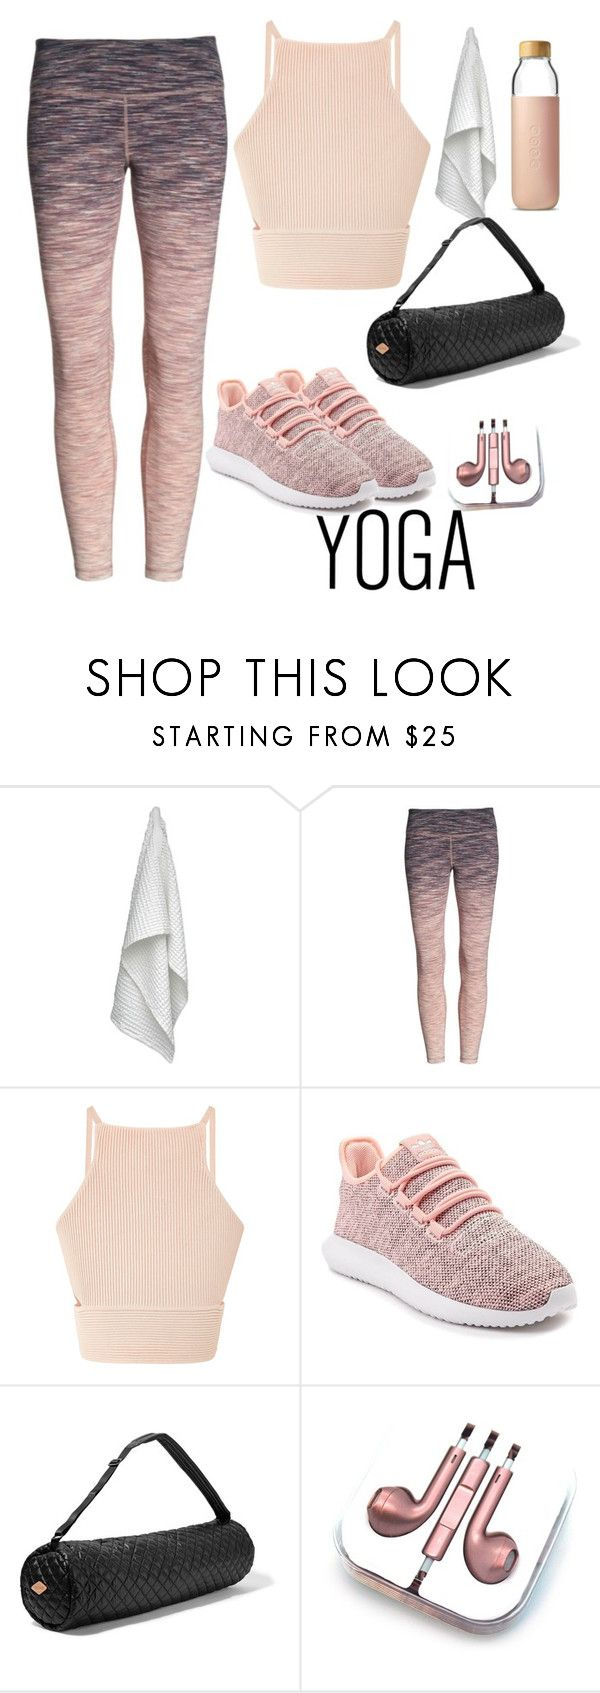 """""""Yoga time"""" by paulitamarmal ❤ liked on Polyvore featuring The Organic Company, Zella, adidas, M Z Wallace, PhunkeeTree and Soma"""